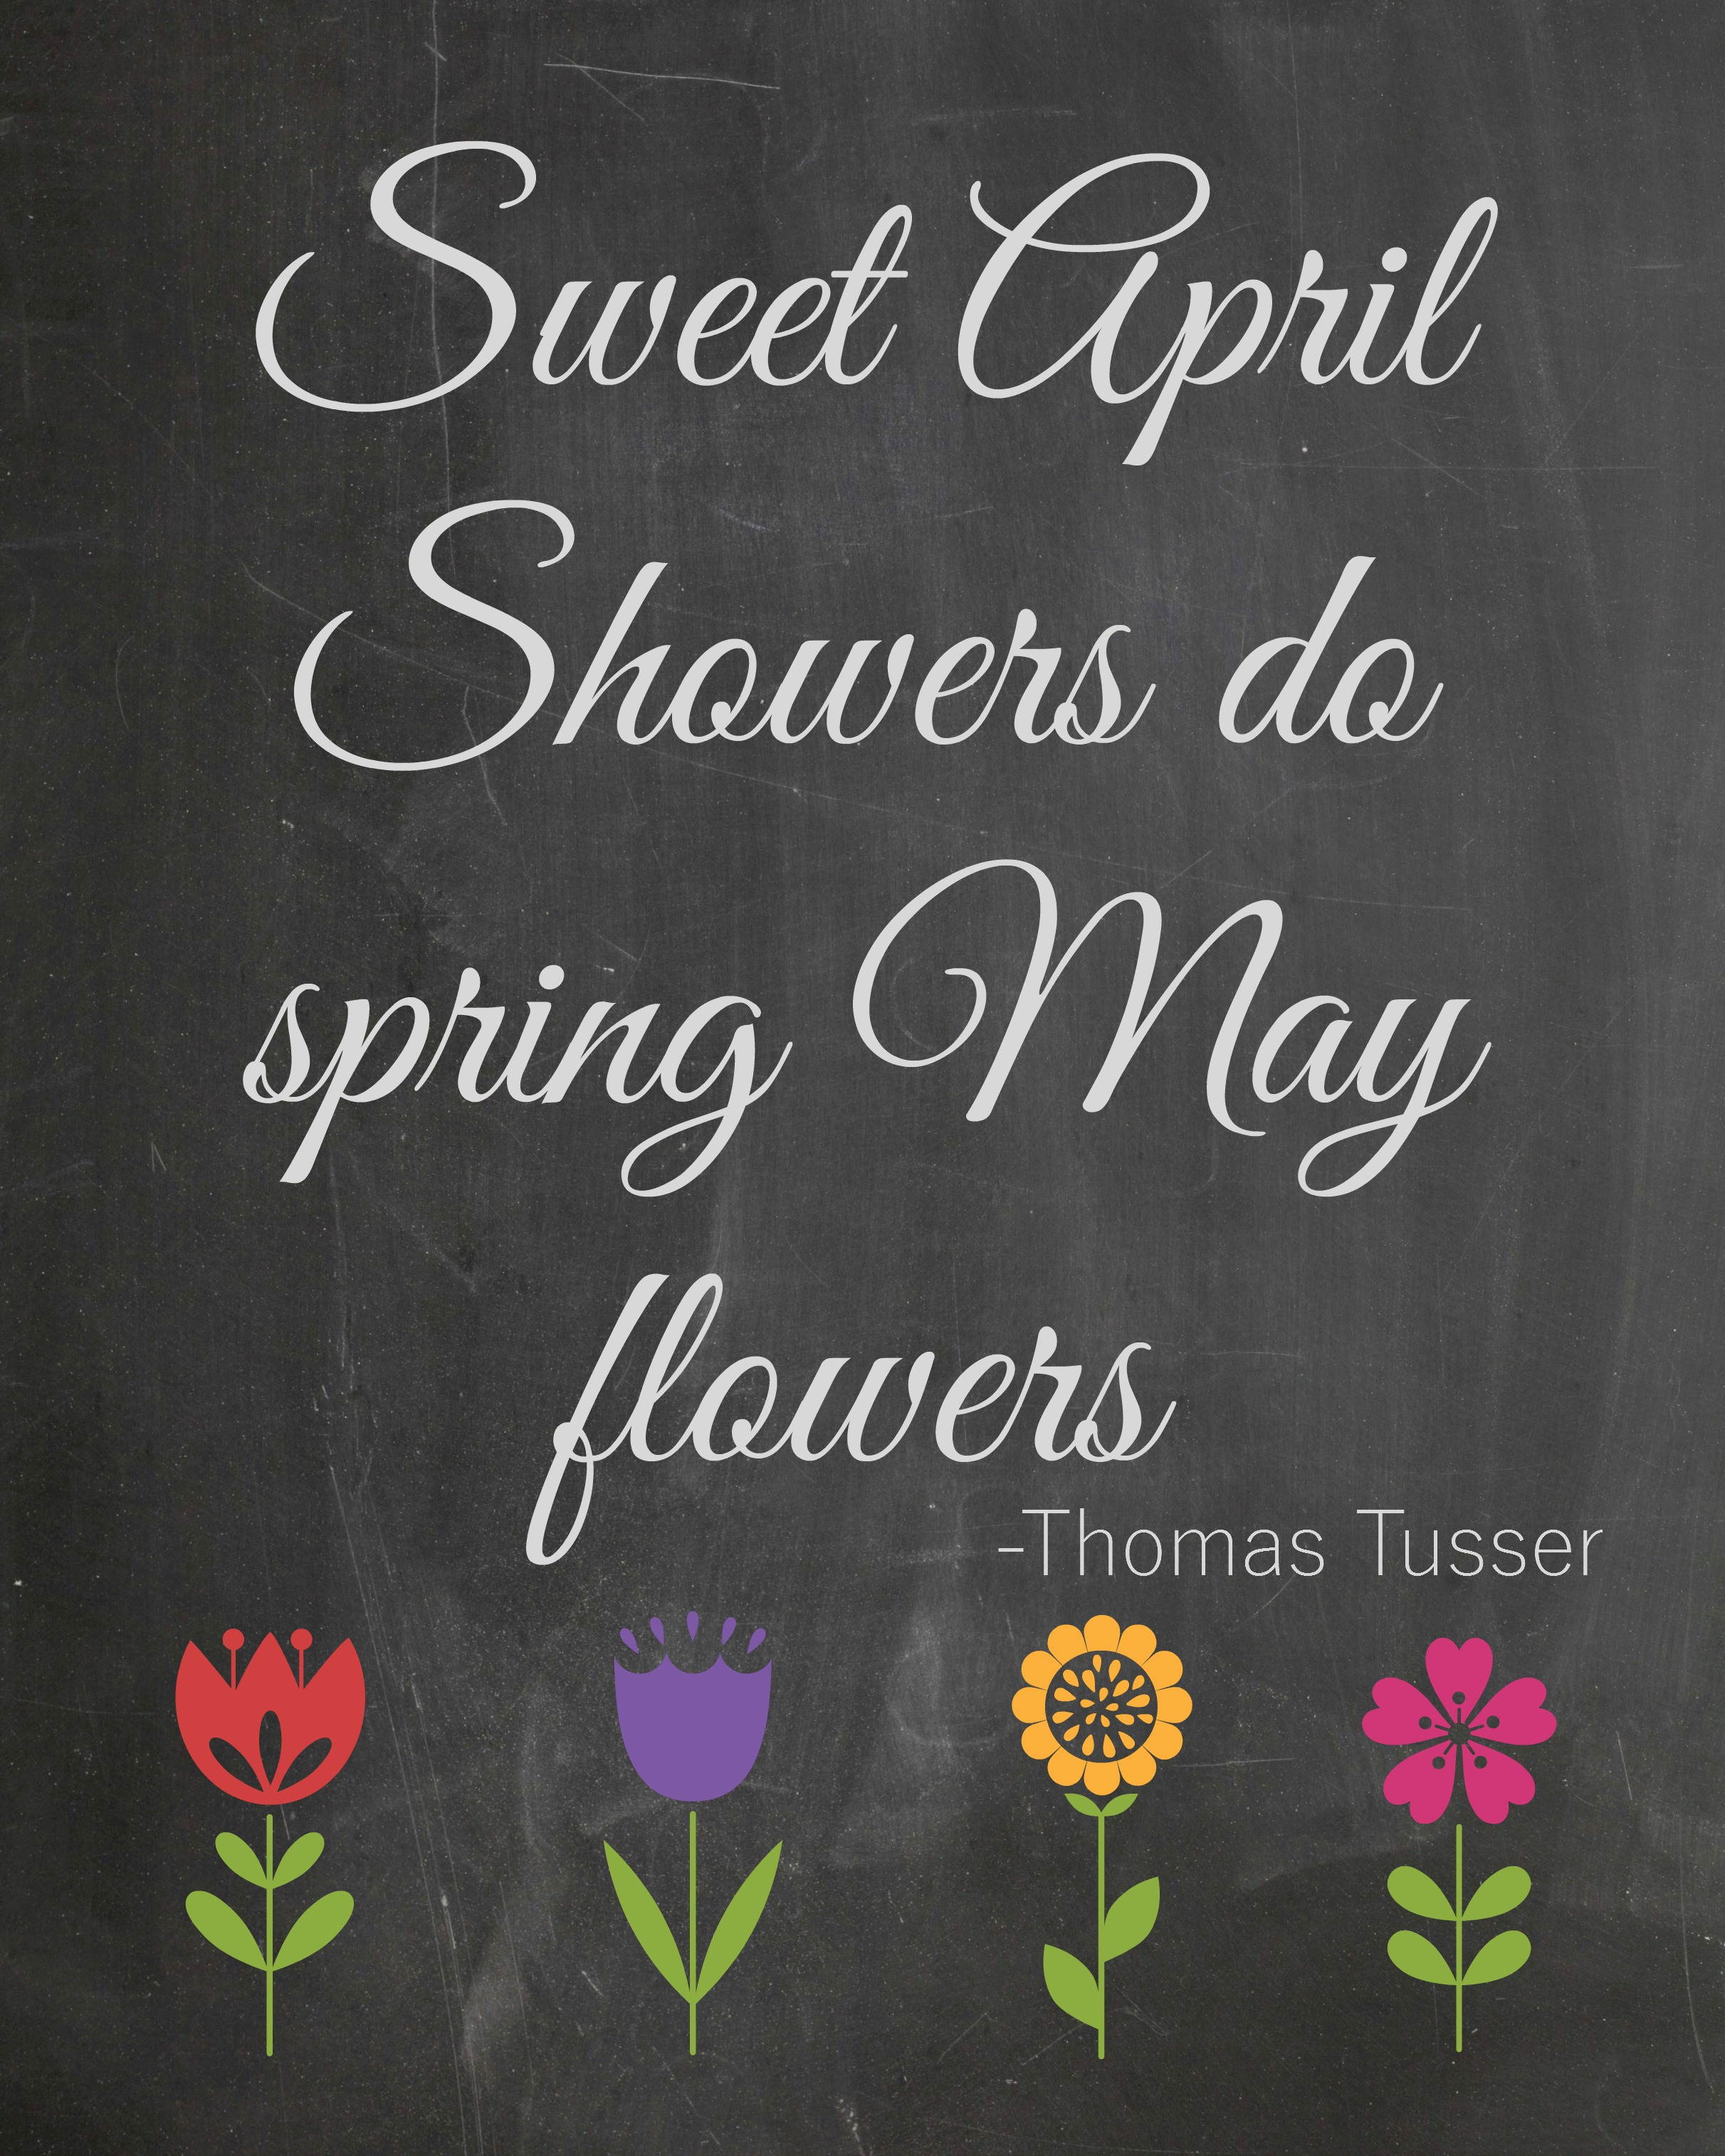 Sweet April Showers